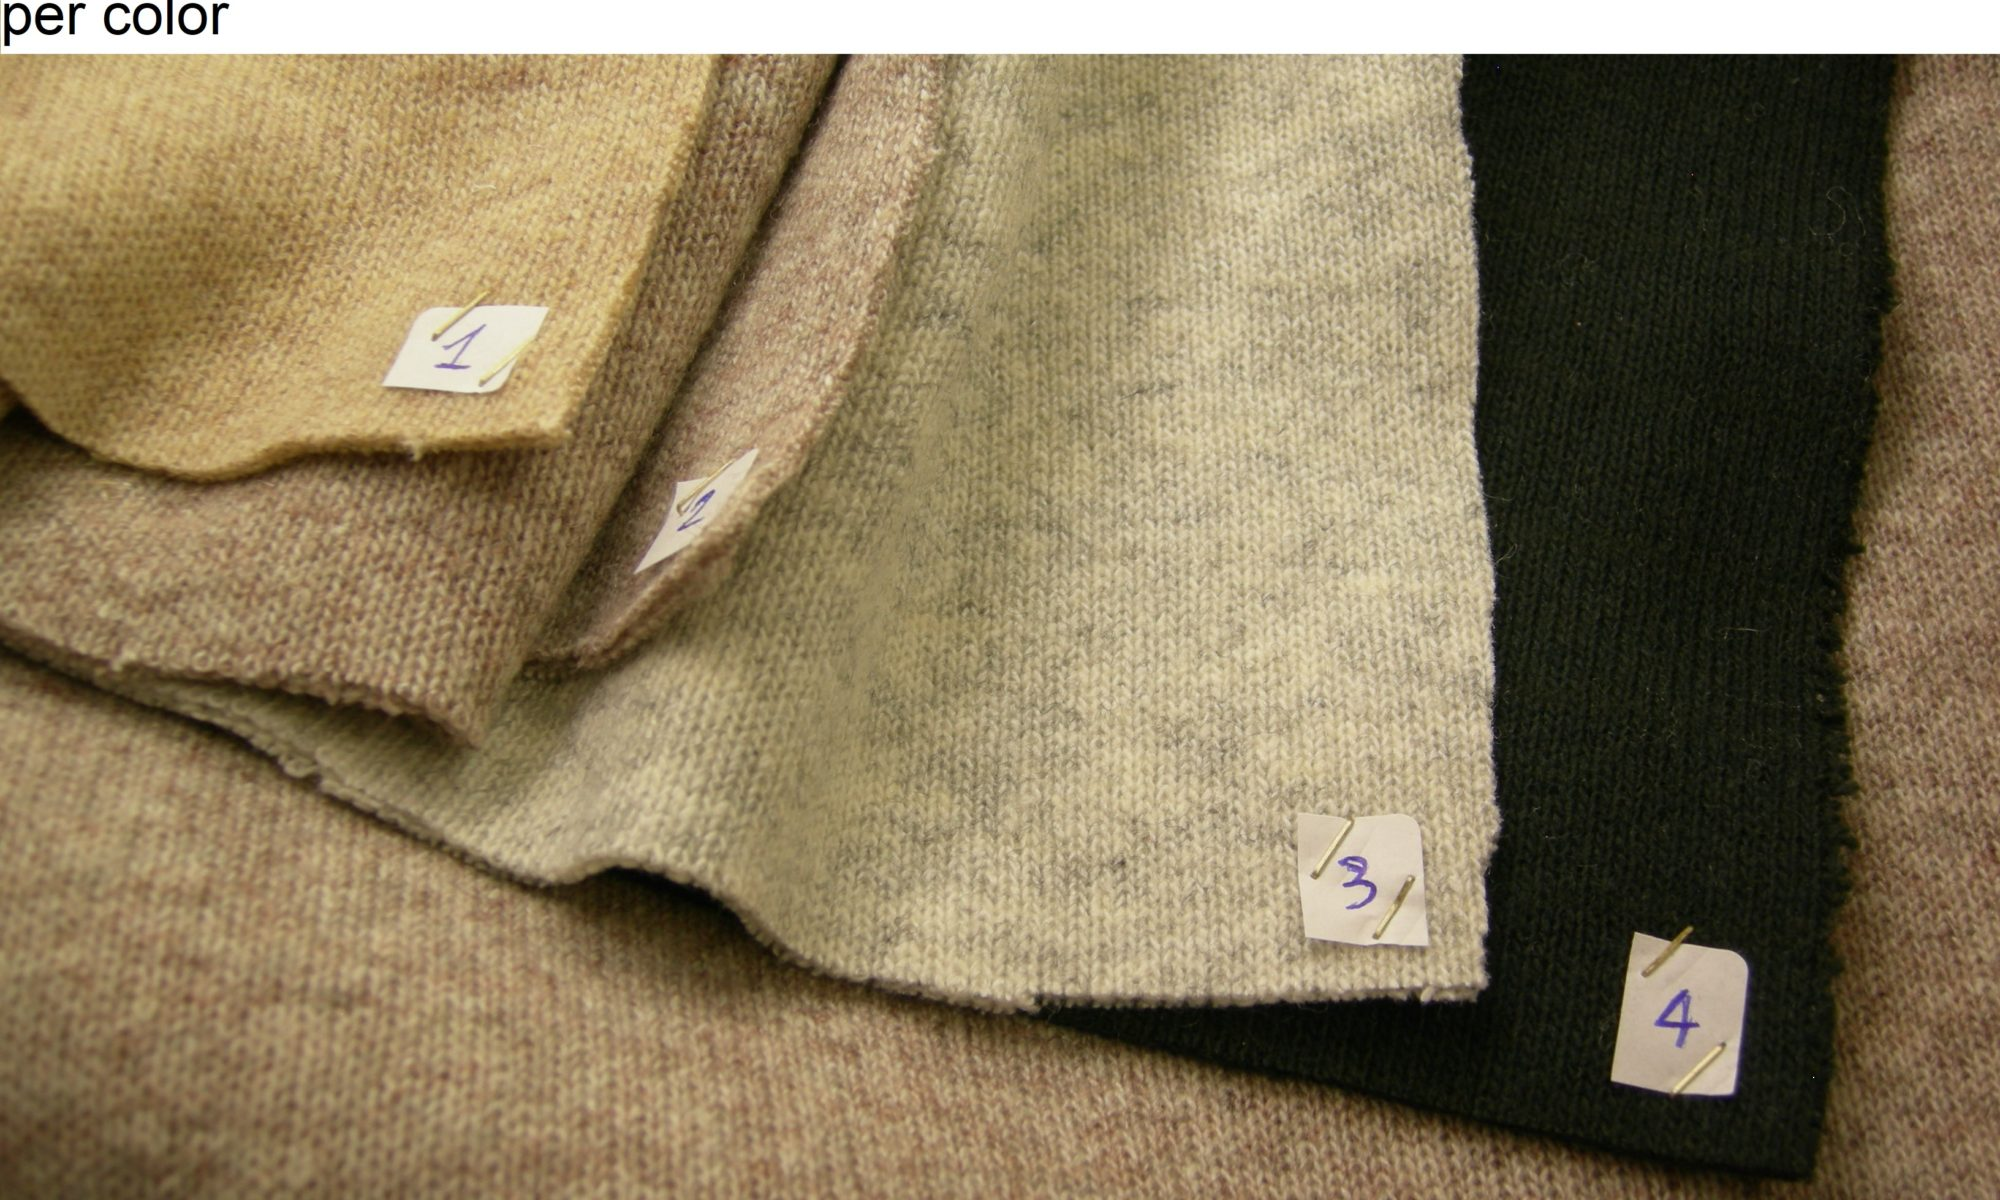 ART 7132 Double faced knit jersey jacket coat fabric WIDTH cm140 WEIGHT gr540 COMPOSITION 55 Wool 40 polyester 5 others - 300mts per color